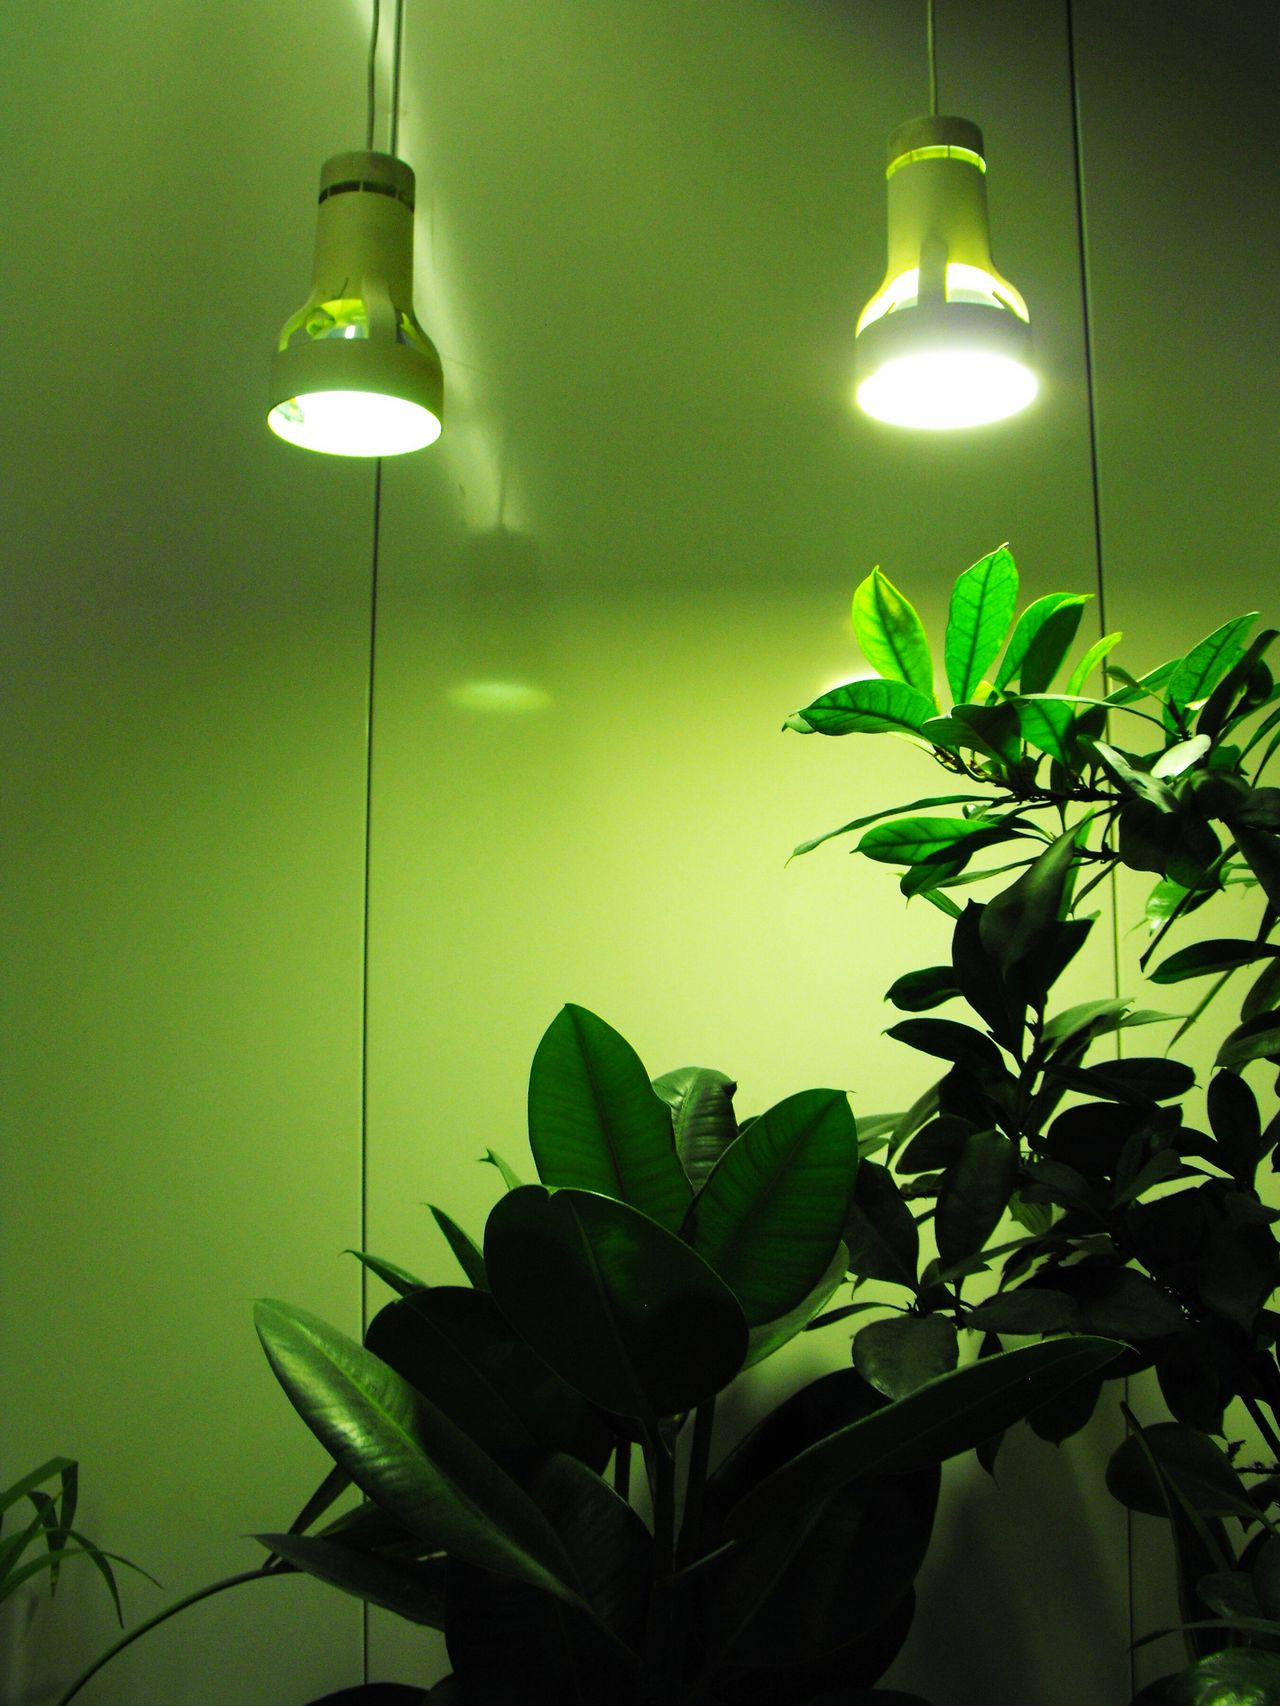 ... an Indoor Garden ... Green Color Leaf Plant Adapted To The City Indoors  Lighting Equipment Illuminated No People Nature Indoor Garden Indoor Gardening Ficus Tree Lamps Houseplant Houseplants Growing Artificial Light Leaves Green Spotlight On Wall Gardening Nature In The City зелень